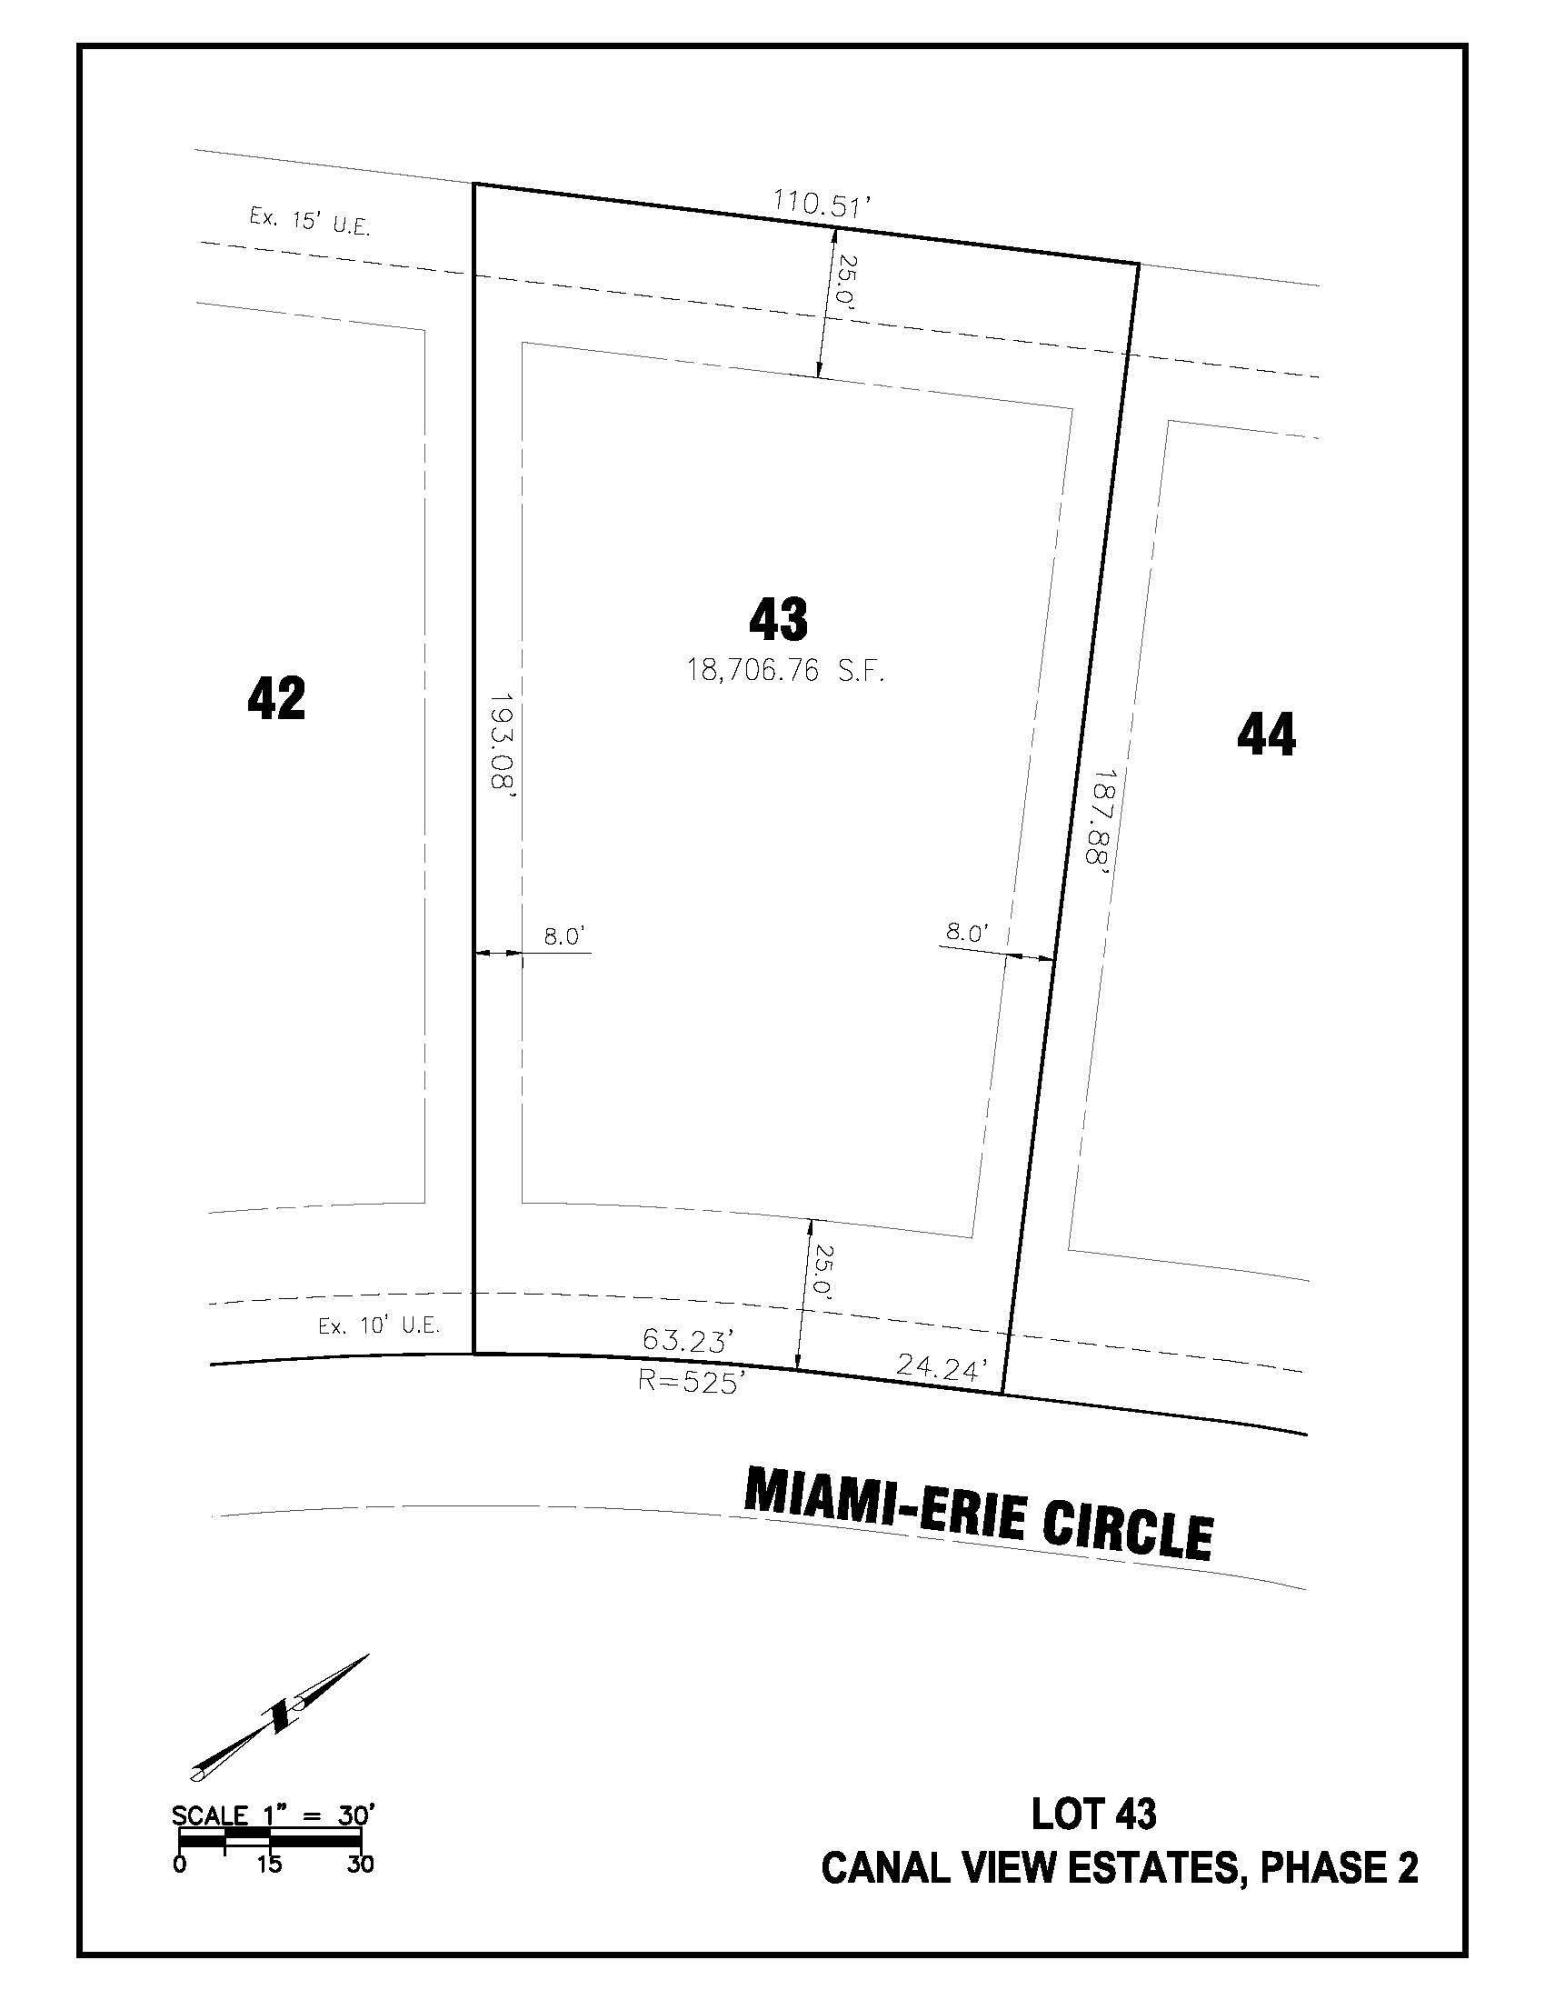 Canal View Estates Phase 2 Real Estate Listings Main Image